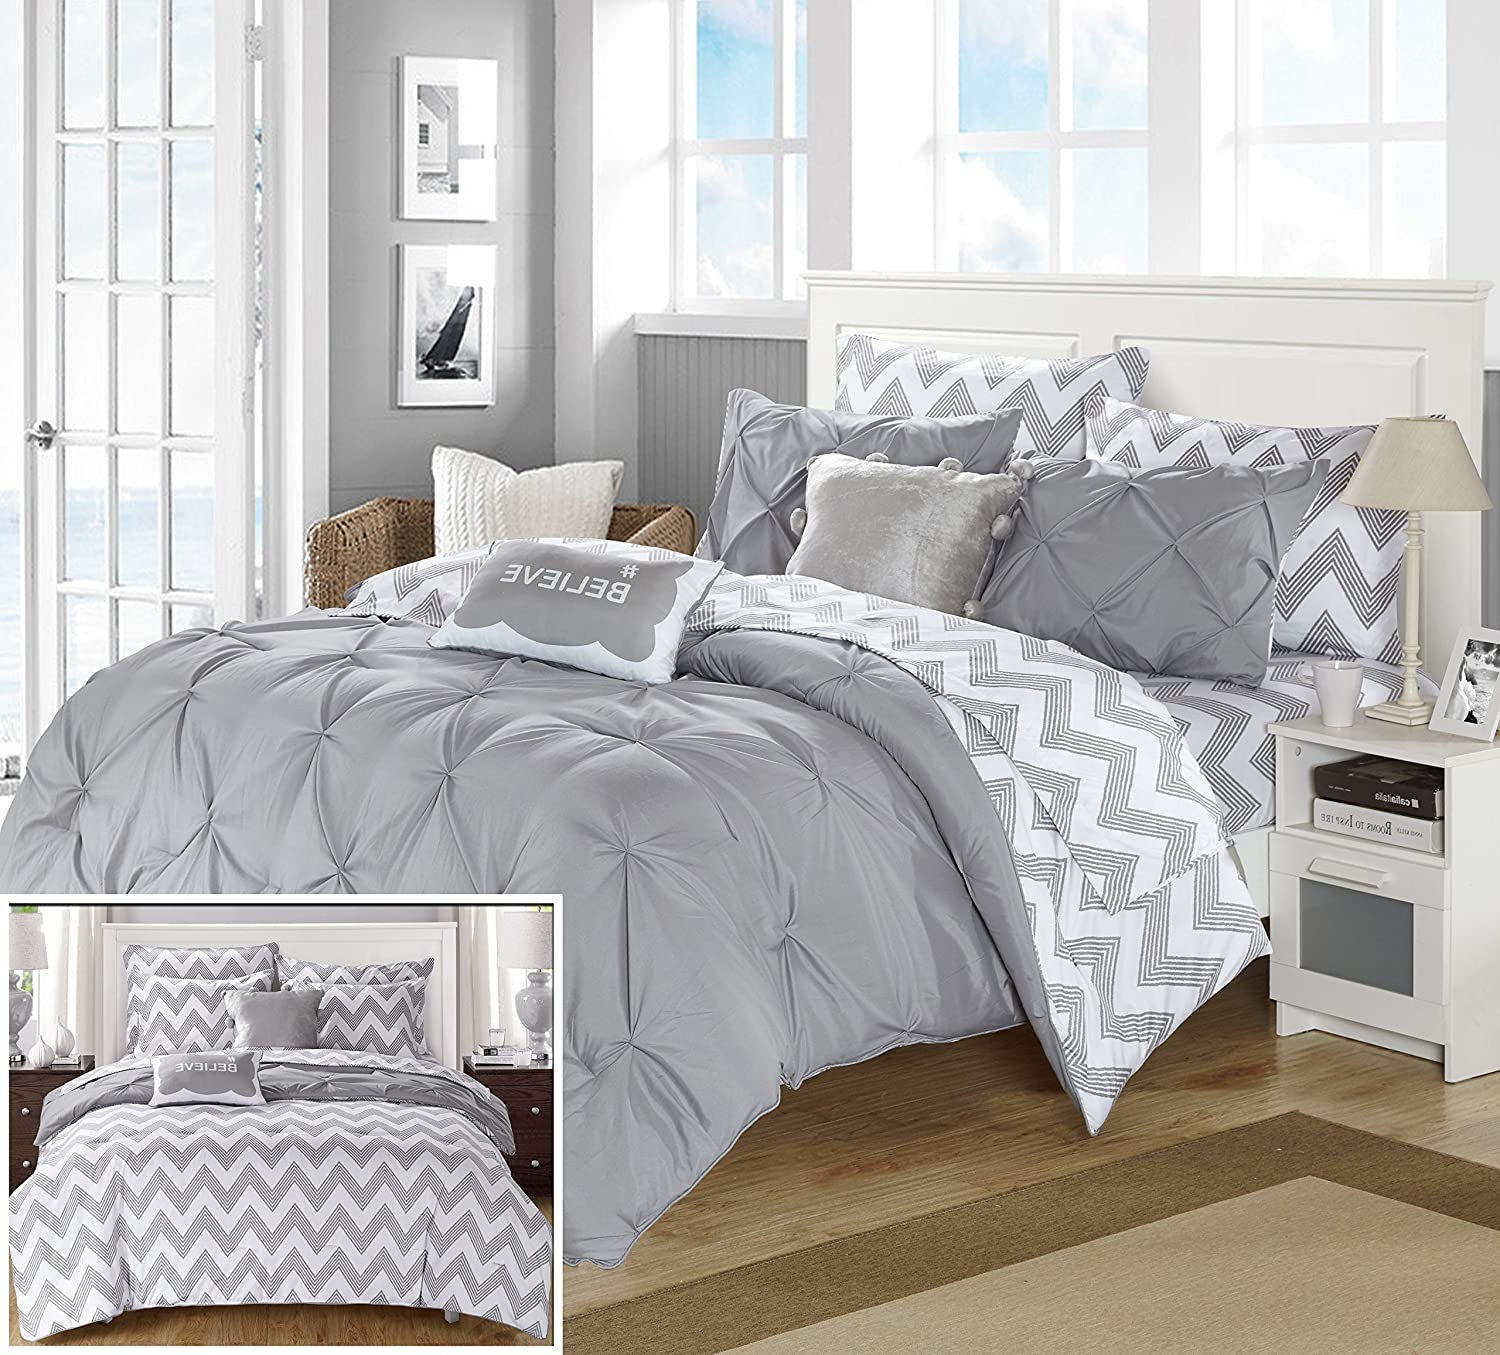 chandler chic pin bed print set design a ikat in striped home comforter piece backing solid